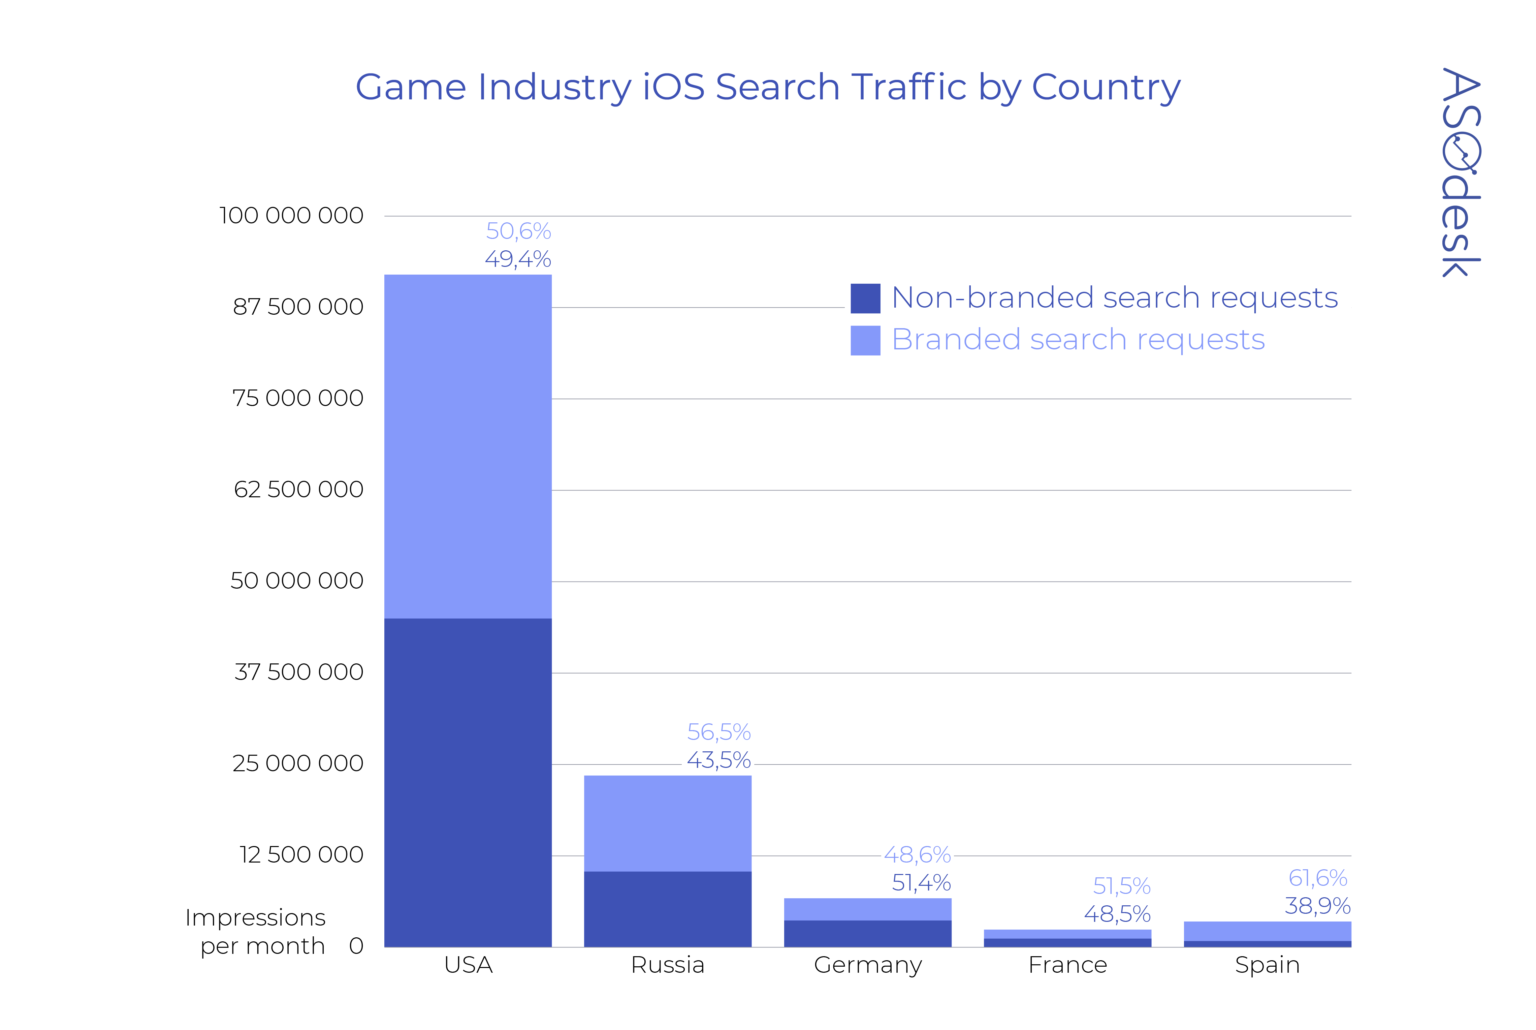 Which game categories in the App Store have the greatest volume of non-branded traffic